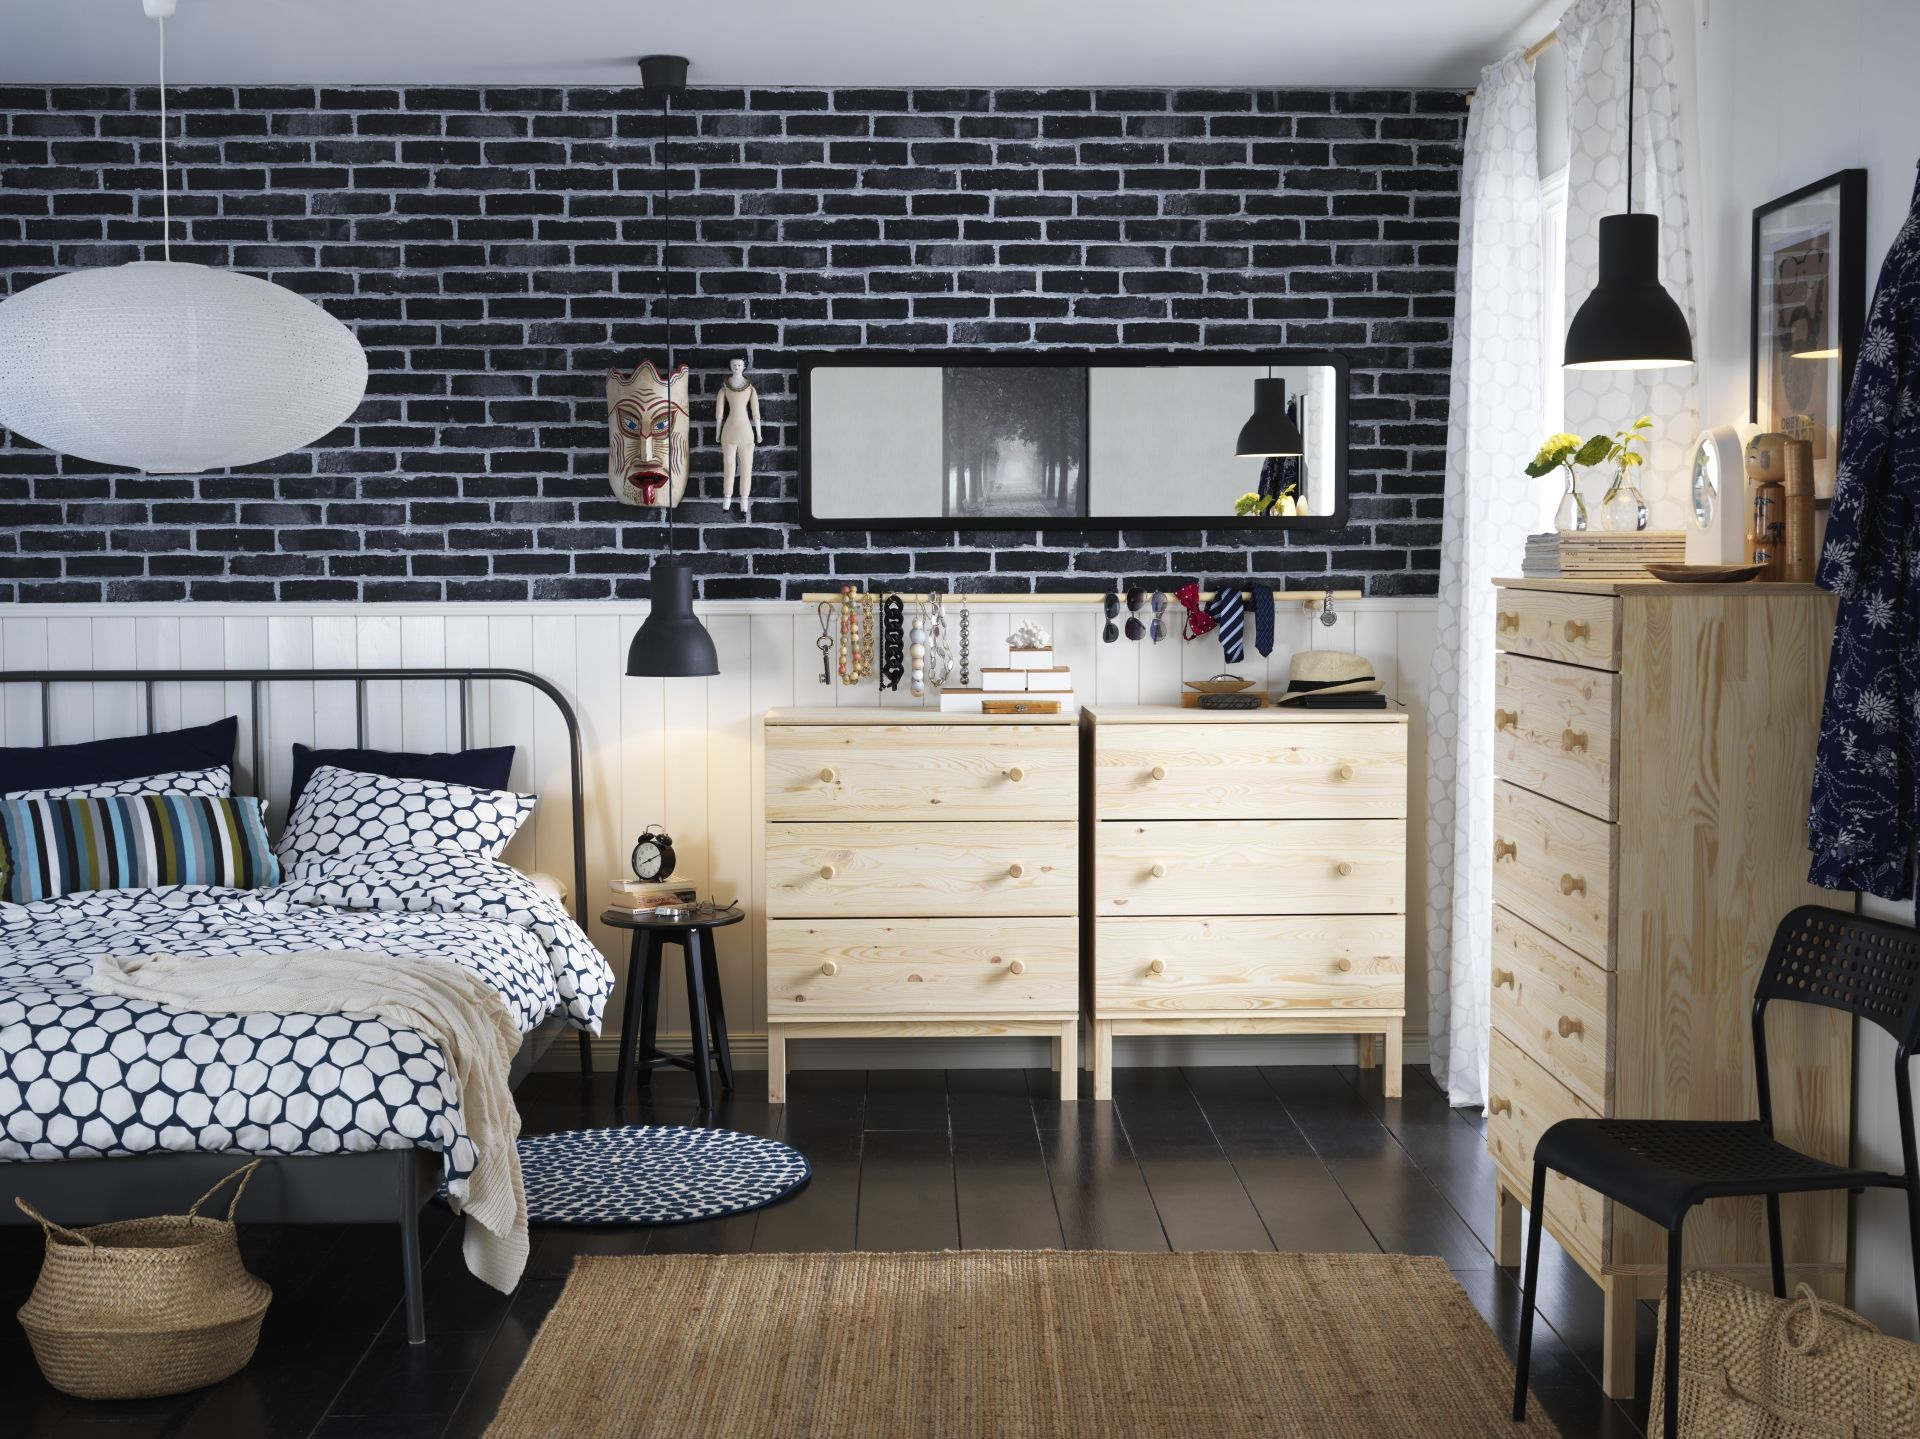 Ikea Ladenkast Grenen.Tarva Ladekast 3 Lades Grenen In 2019 One Day Ikea Furniture